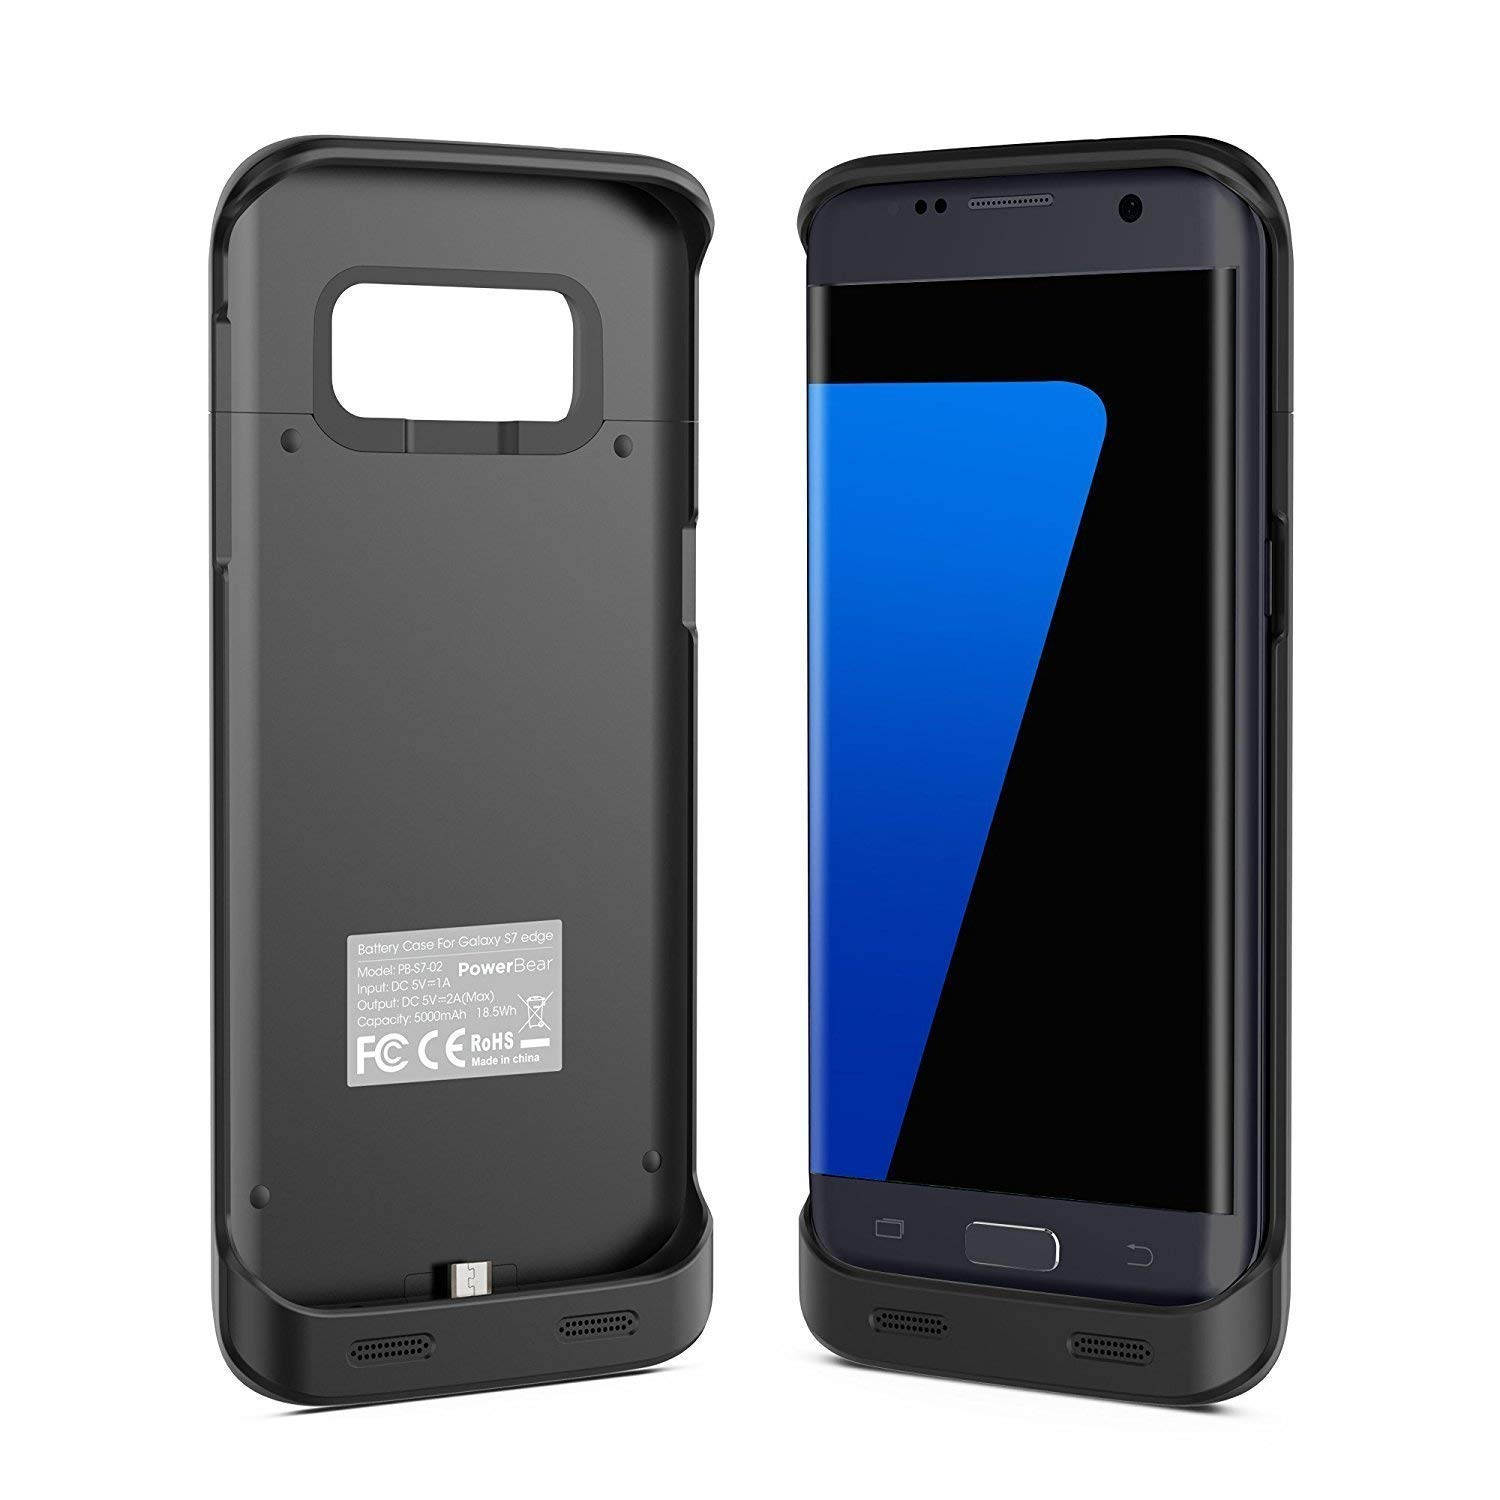 - Black 4,500 mAh High Capacity External Battery Charger for The Galaxy S7 PowerBear Samsung Galaxy S7 Battery Case Up to 1.5X Extra Battery 24 Month Warranty